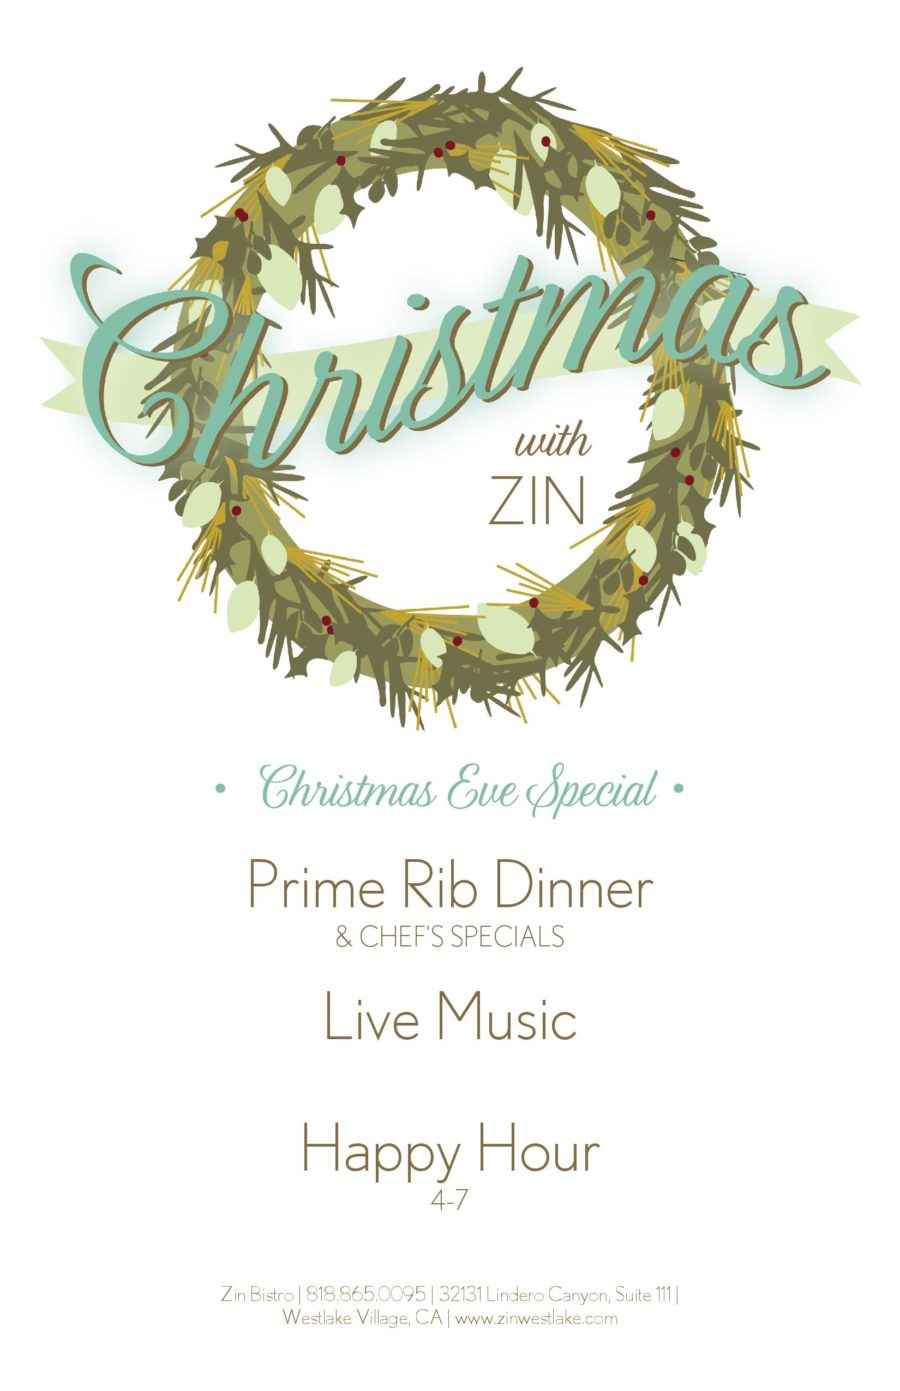 Spend Christmas Eve with Family, at Zin Bistro